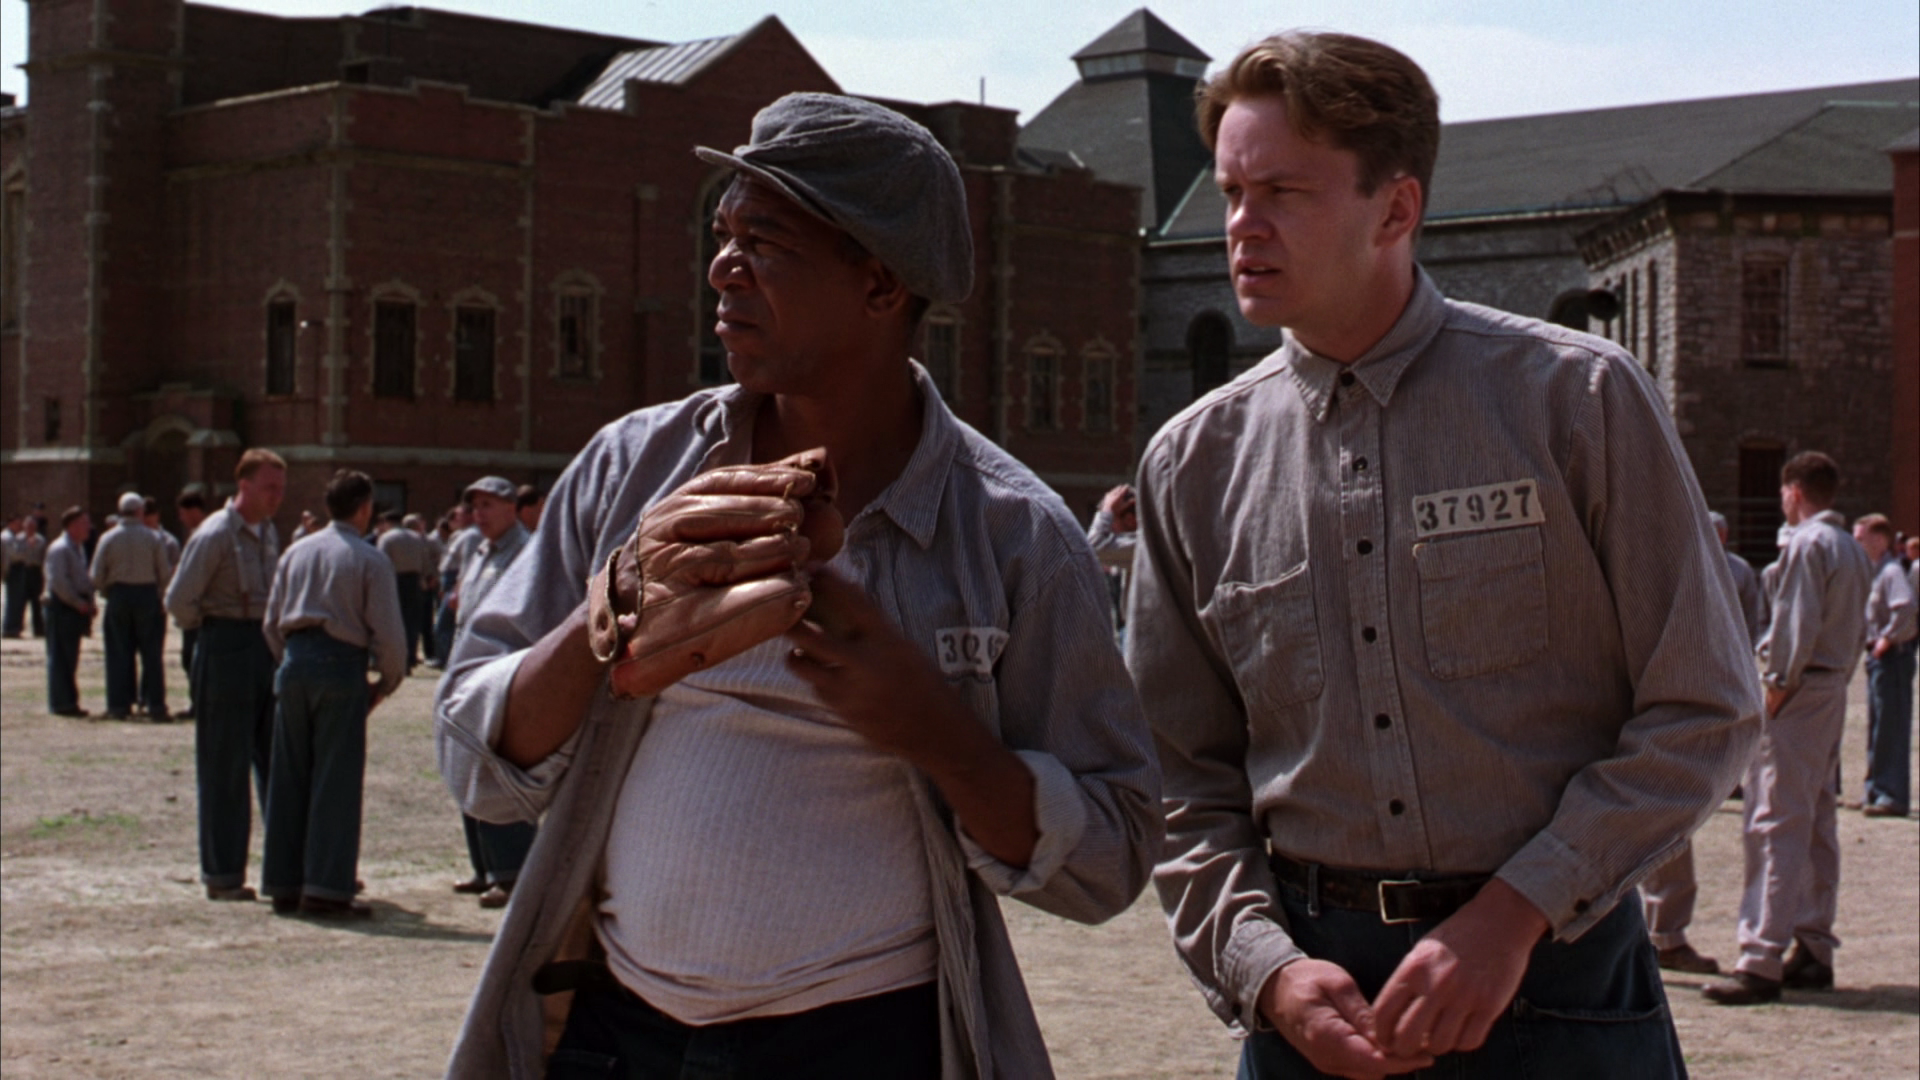 The suffering in the prison cells in the shawshank redemption